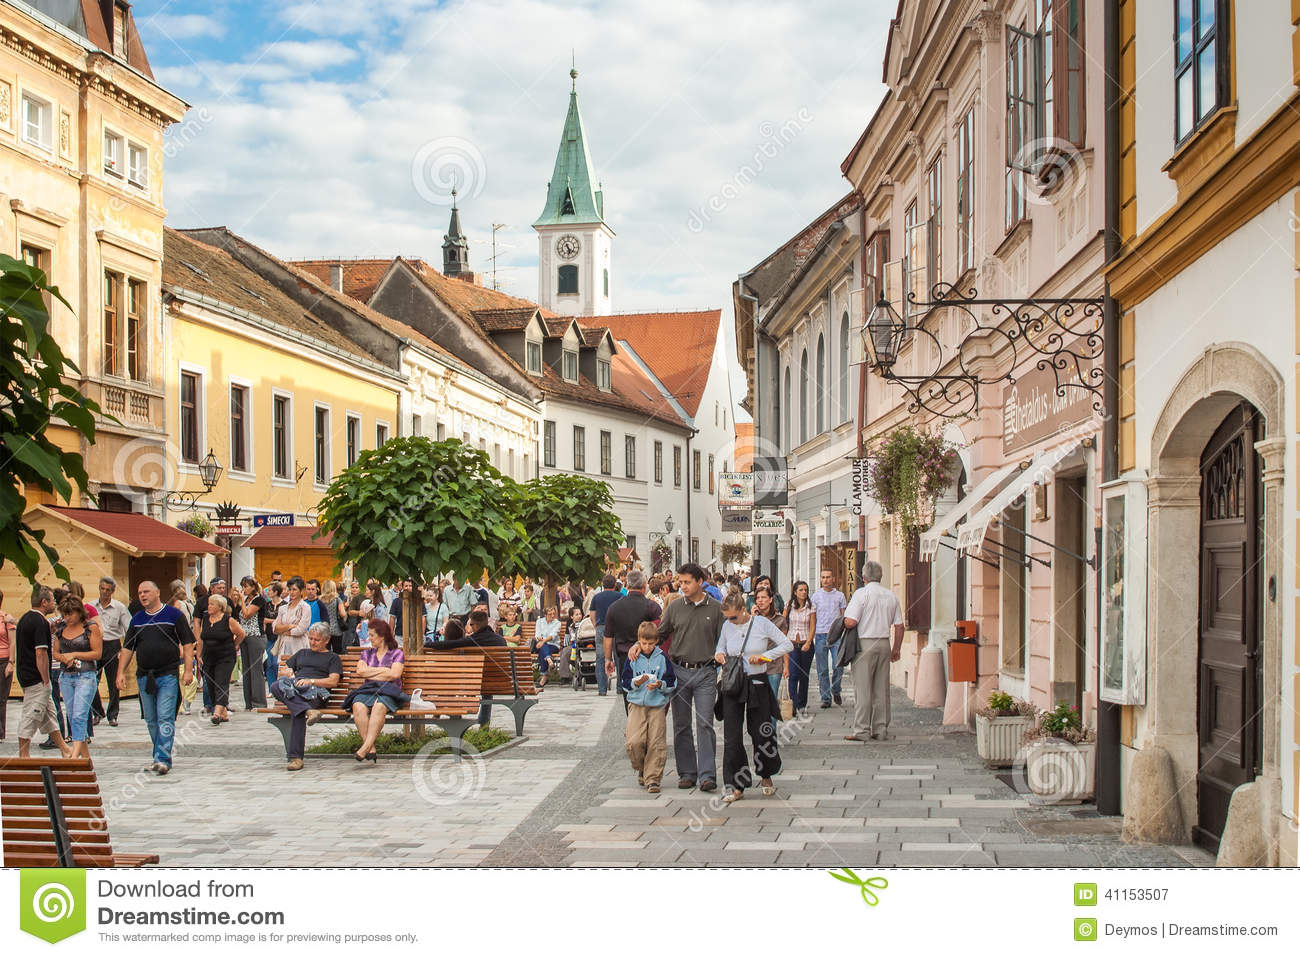 varazdin women Daily market, varazdin: see 10 unbiased reviews of daily market, rated 4 of 5 on tripadvisor and ranked #21 of 34 restaurants in varazdin.